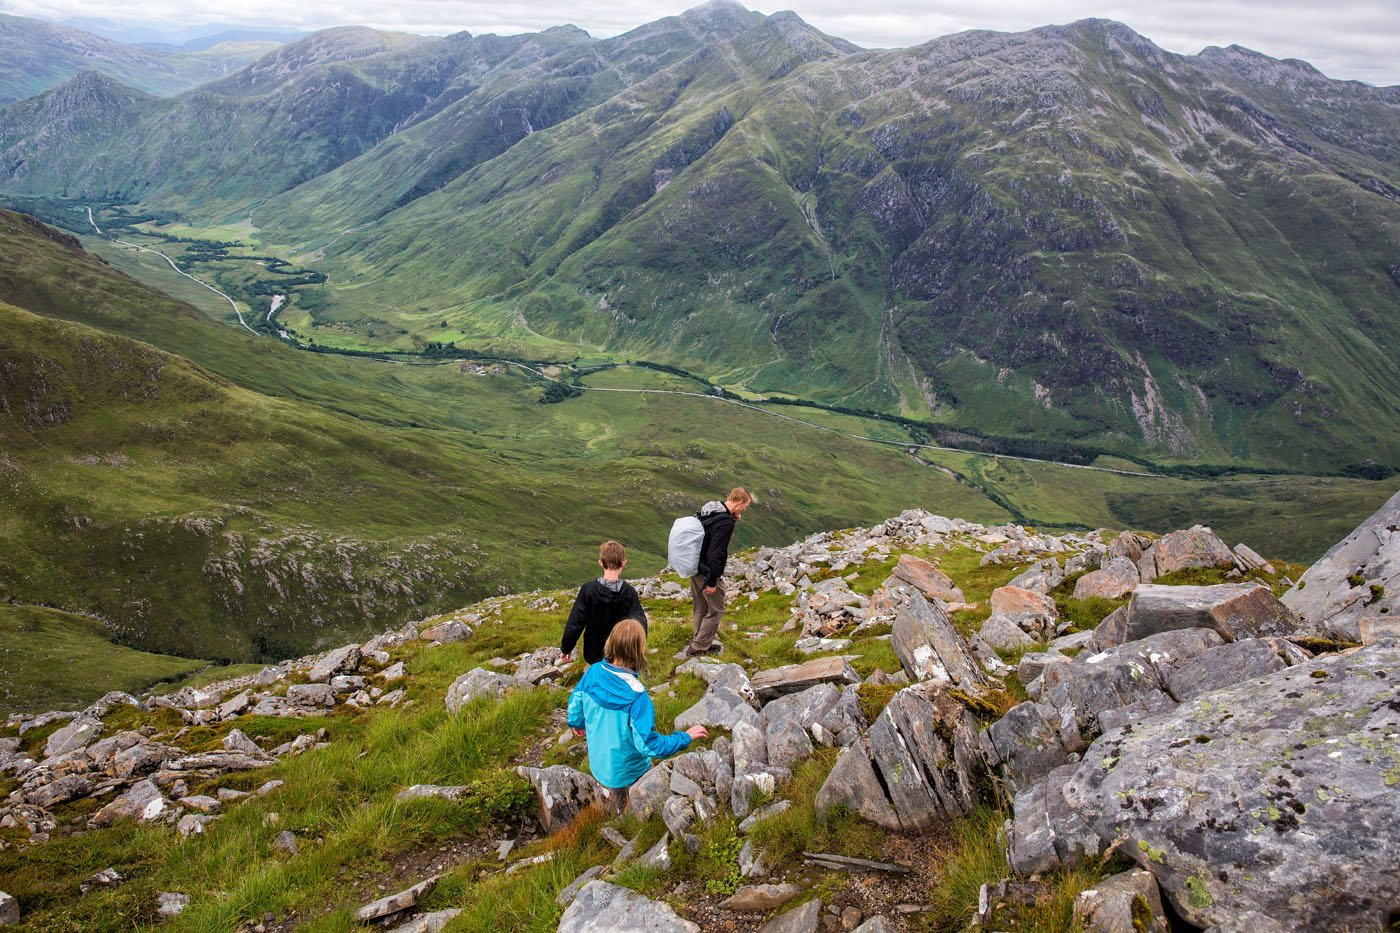 Kintail descent